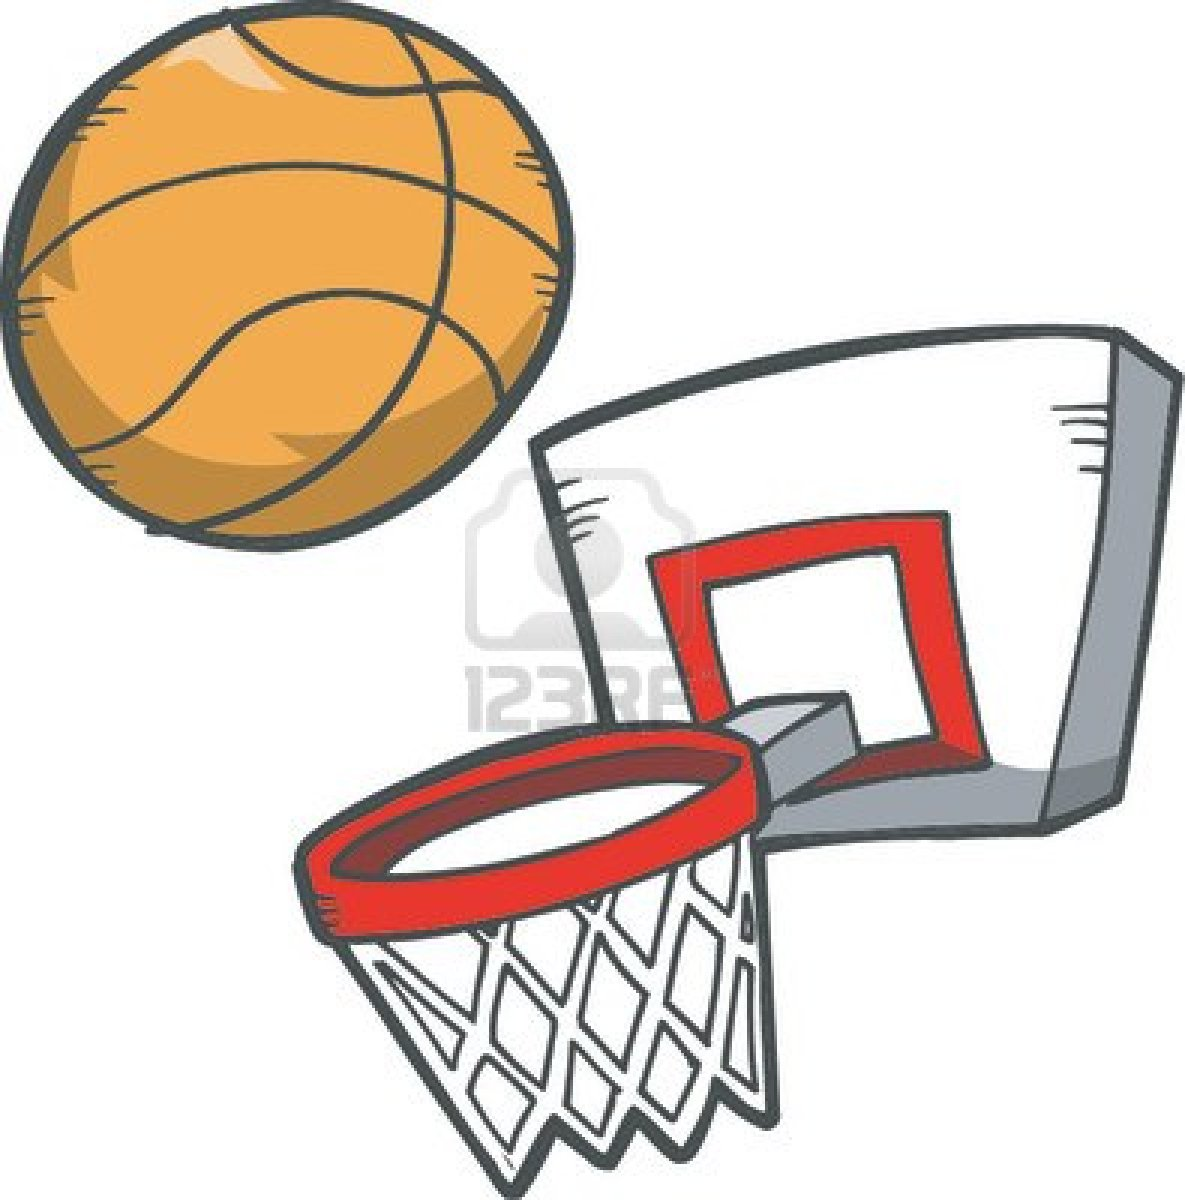 clip art images basketball - photo #31